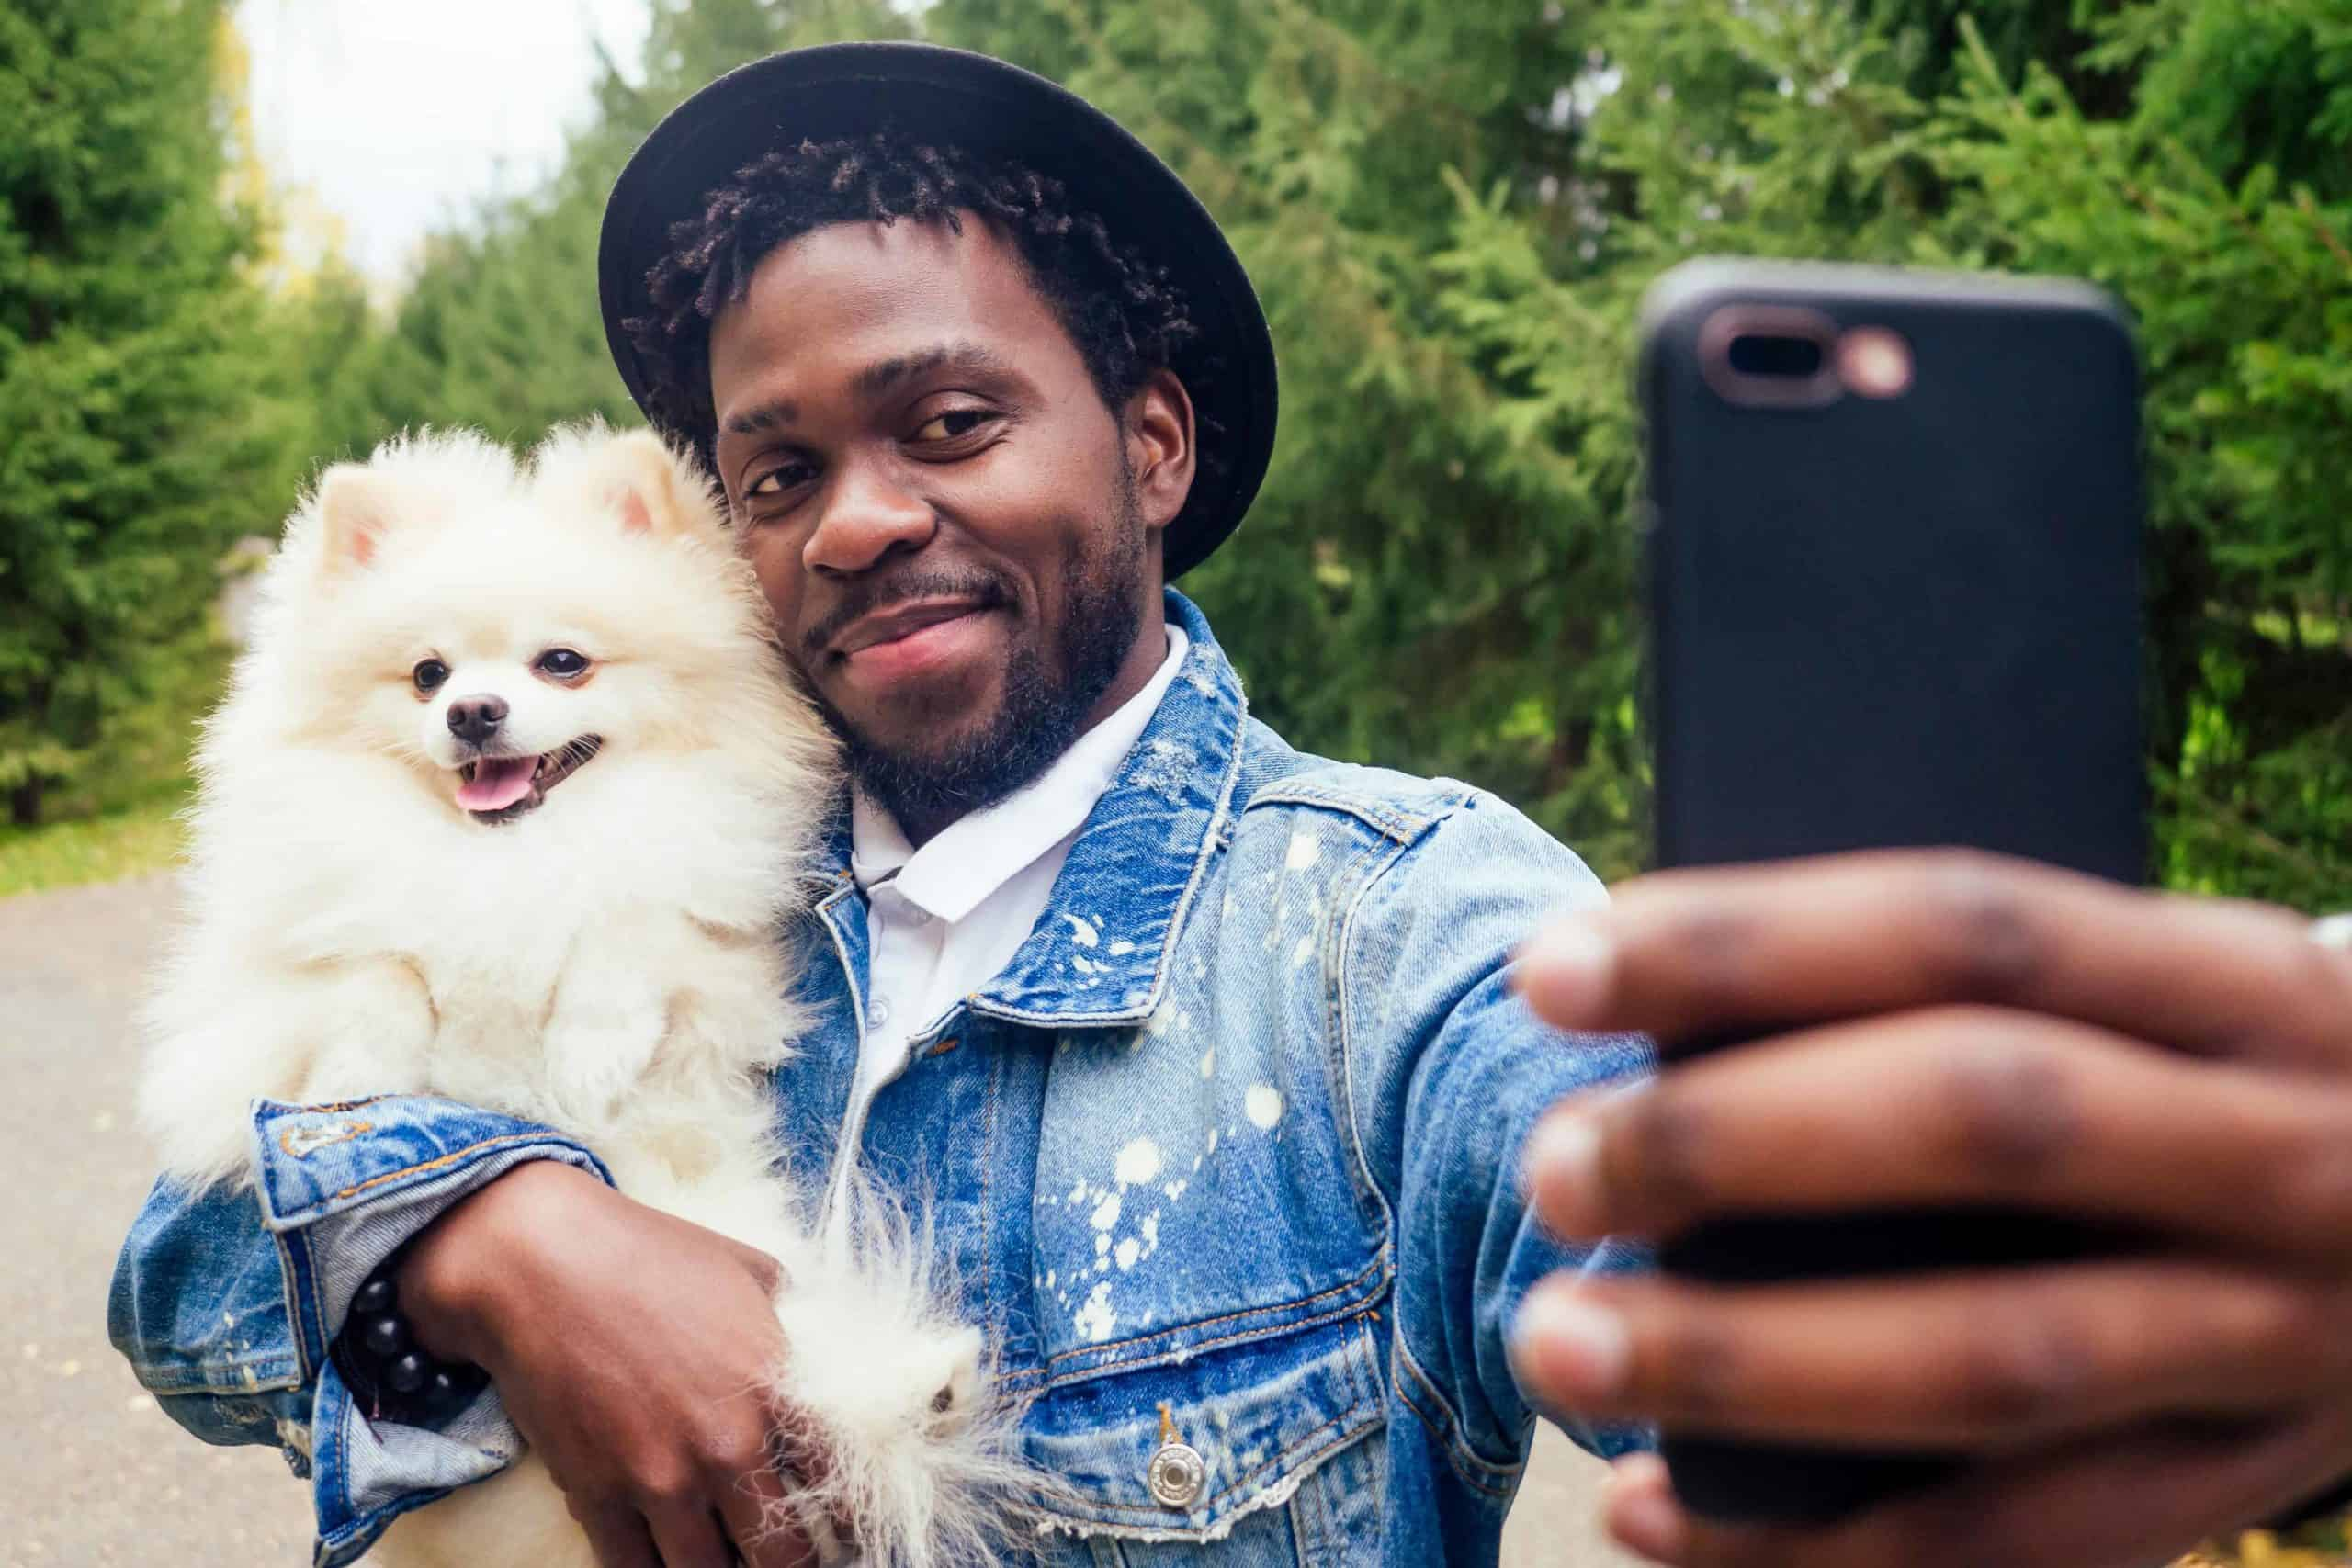 Owner takes selfie while holding his Spitz dog. Creating worthy social media content with animals is easier, as they all are cute and beautiful by default.